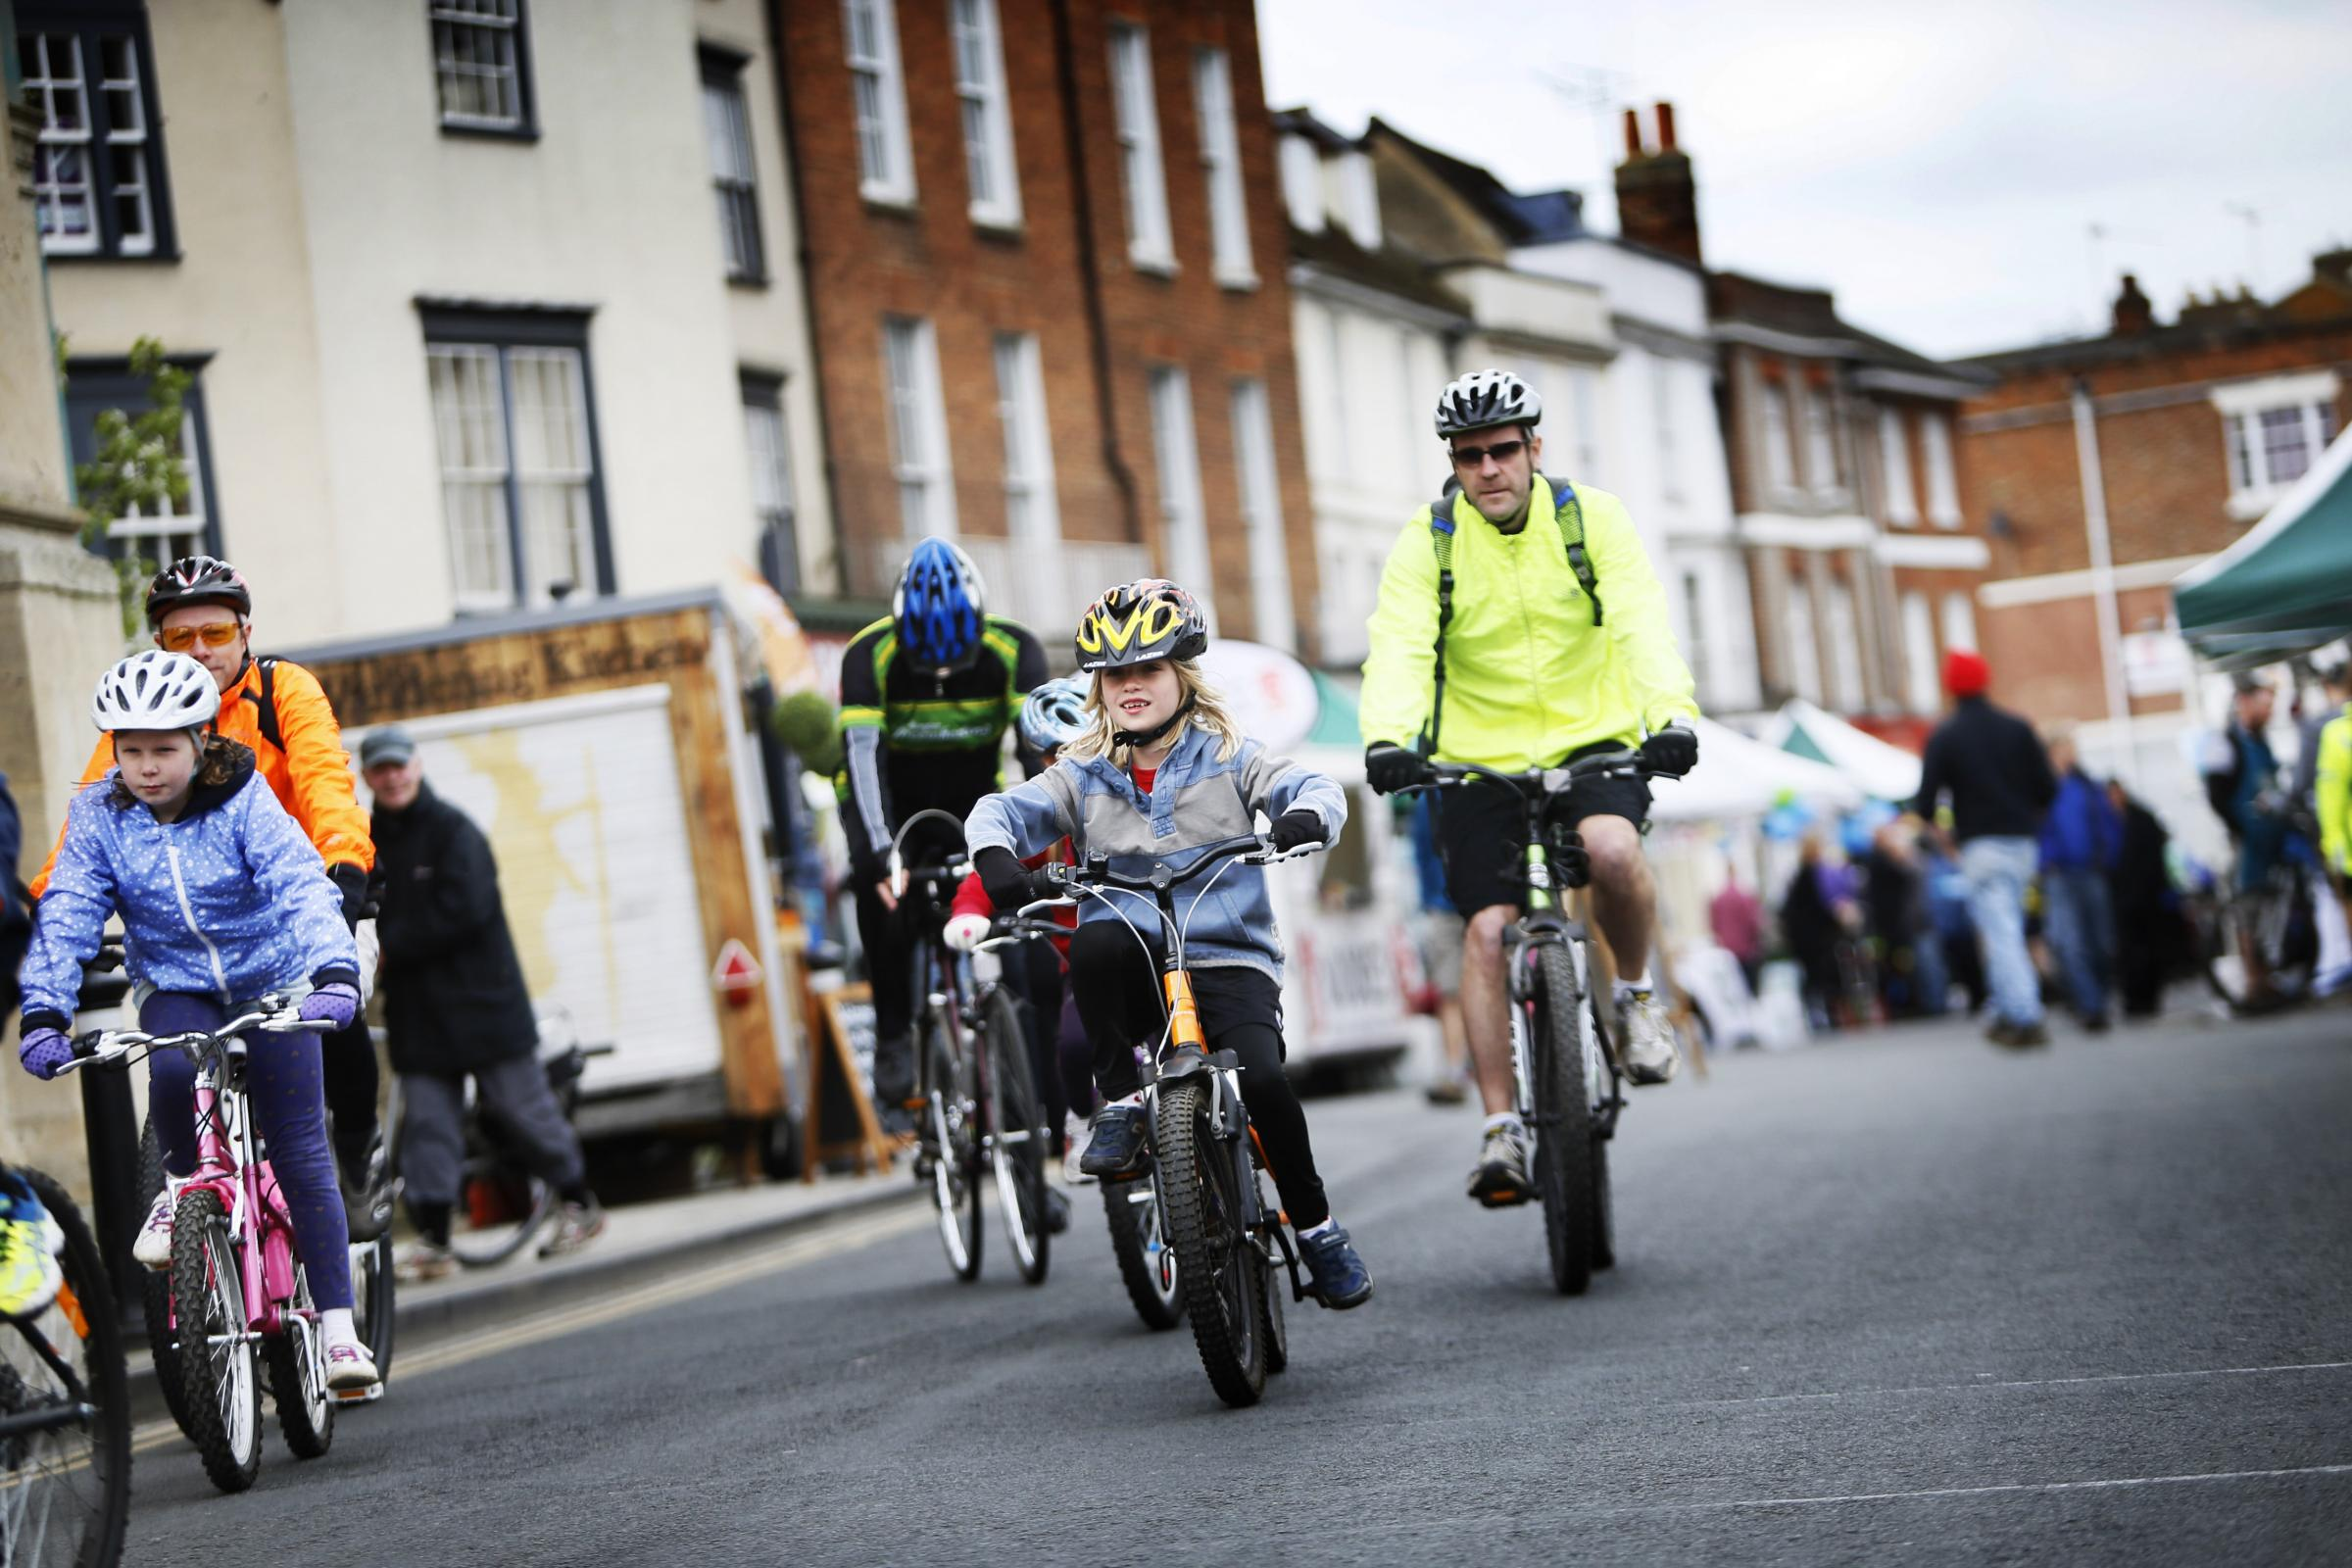 Booked by MO on 17/04/15.A free one-day cycling festival in Abingdon promises to get scores of new riders in the saddle. Visitors to the Spring Cycle Festival on Sunday April 19, can try out a range of bikes, go on bike rides, and visit a bike �do